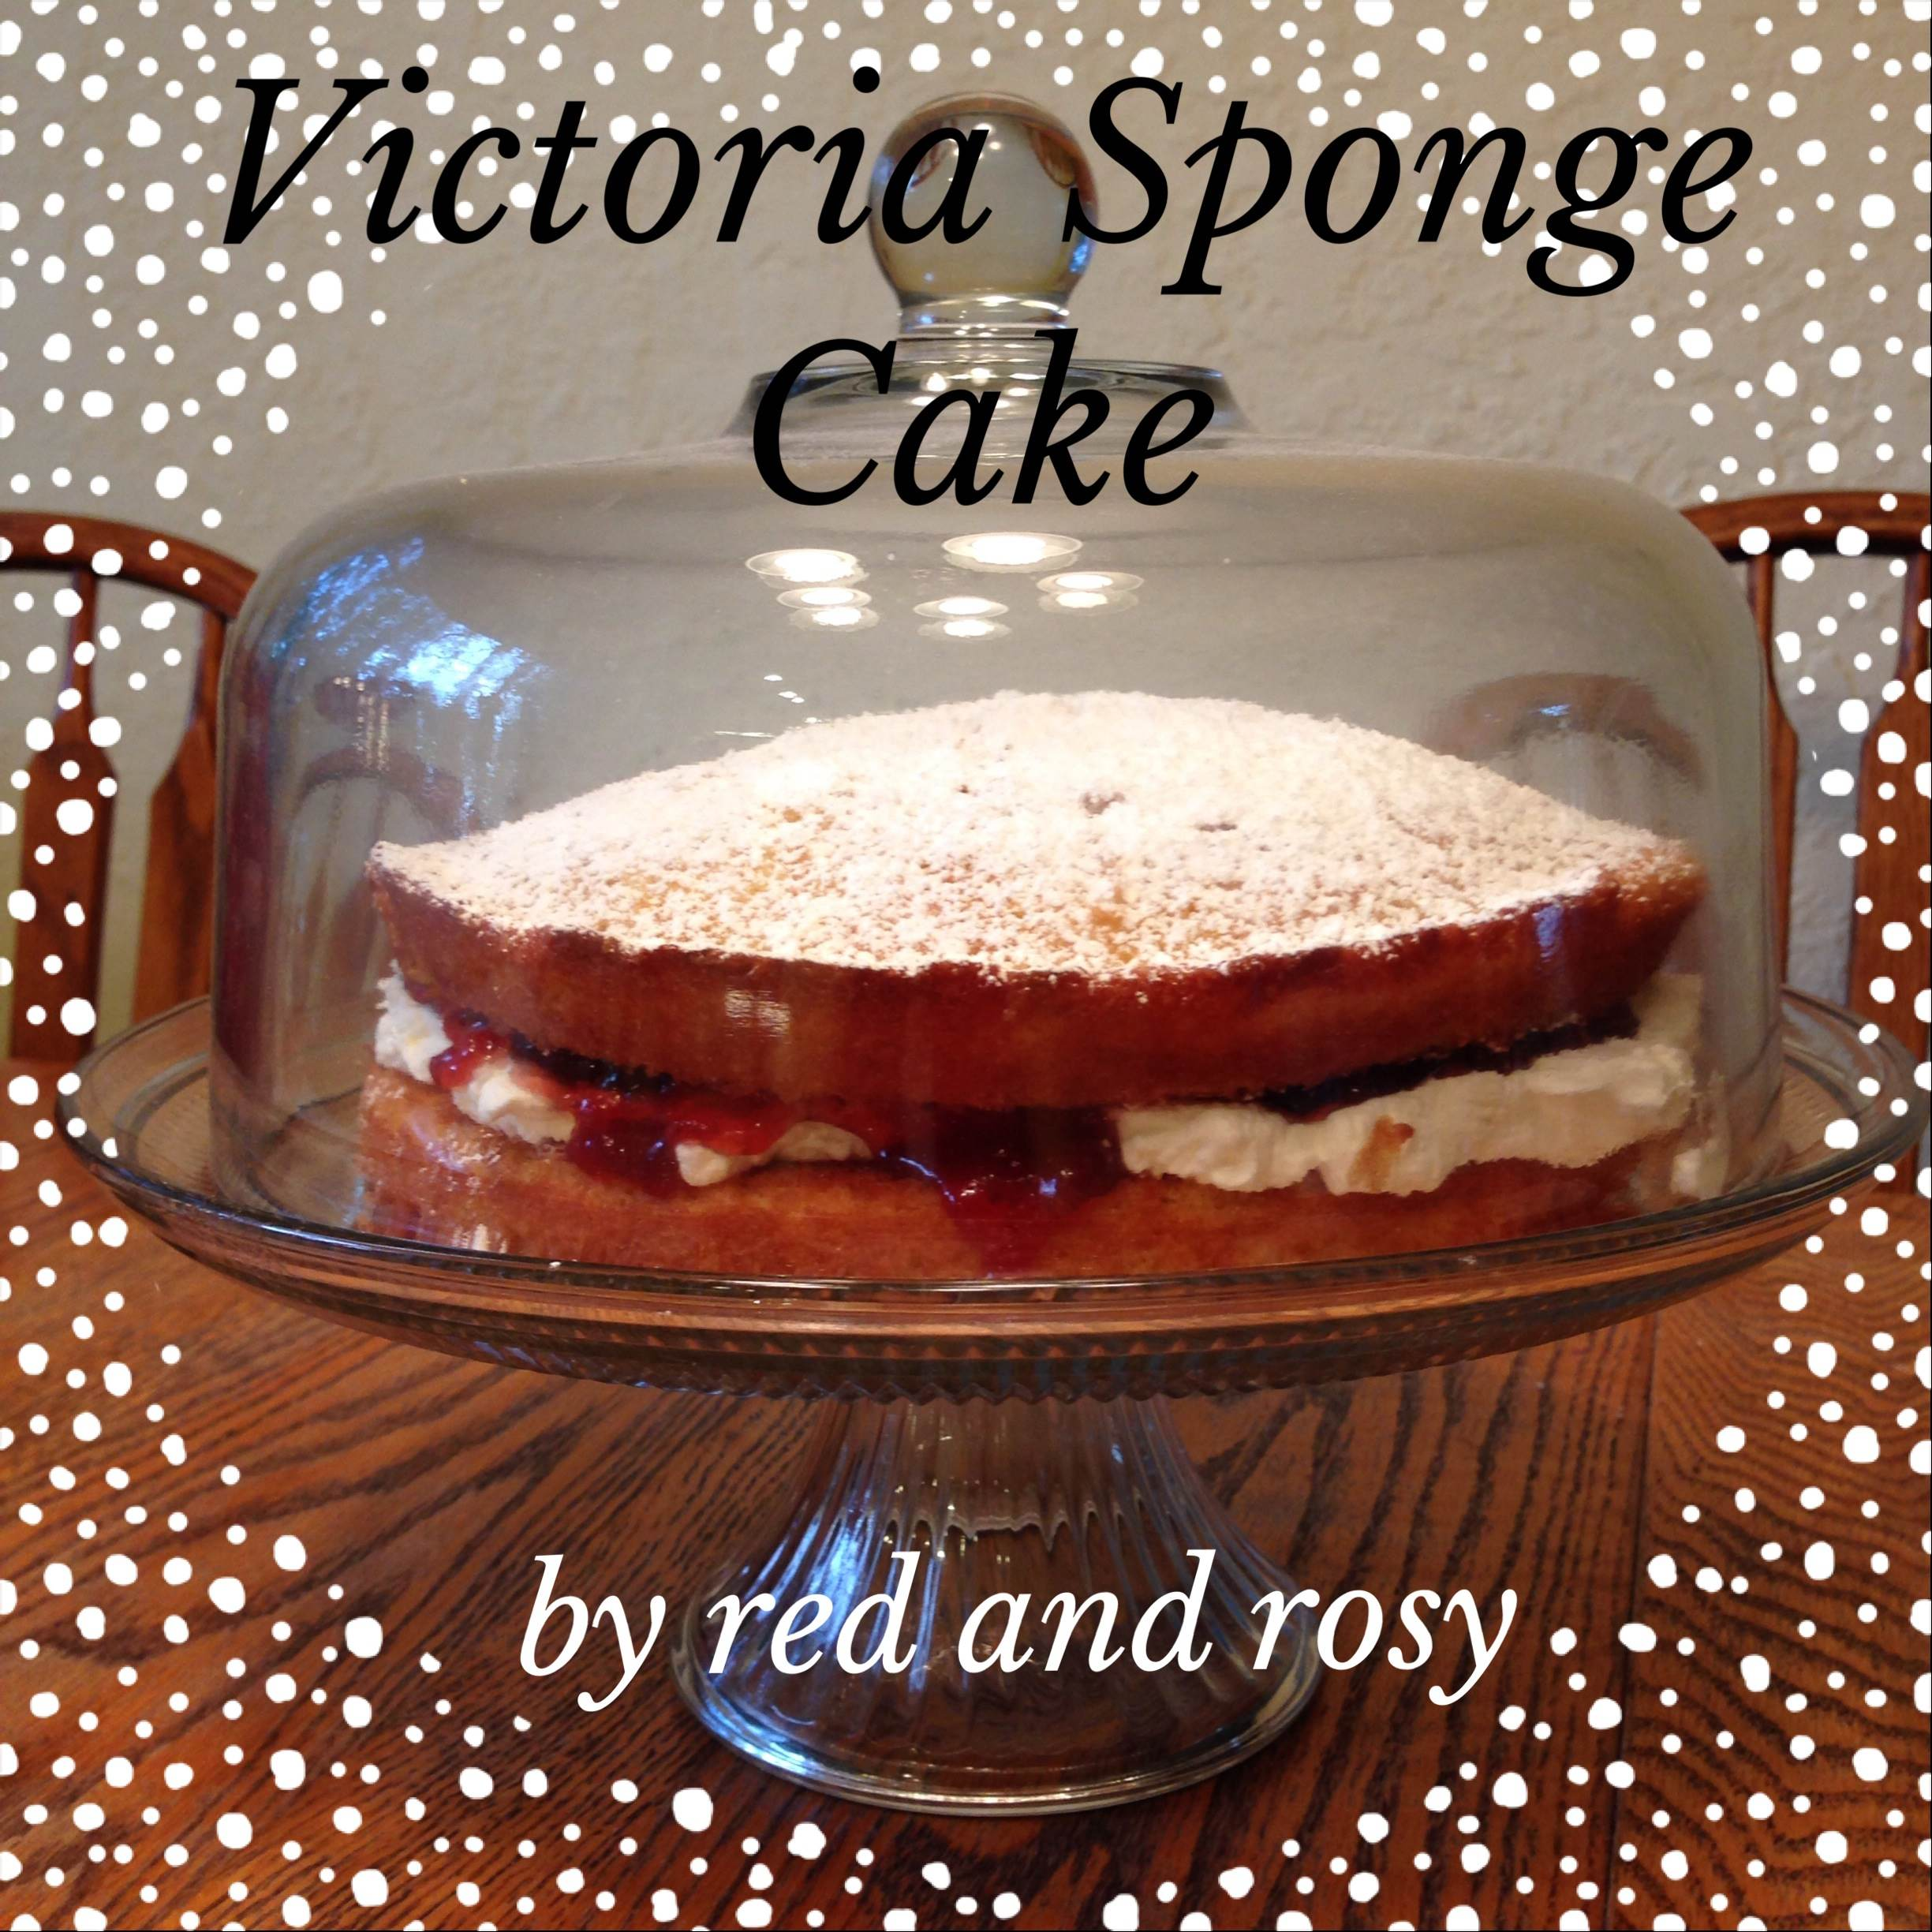 Victoria Sponge Cake by Red & Rosy